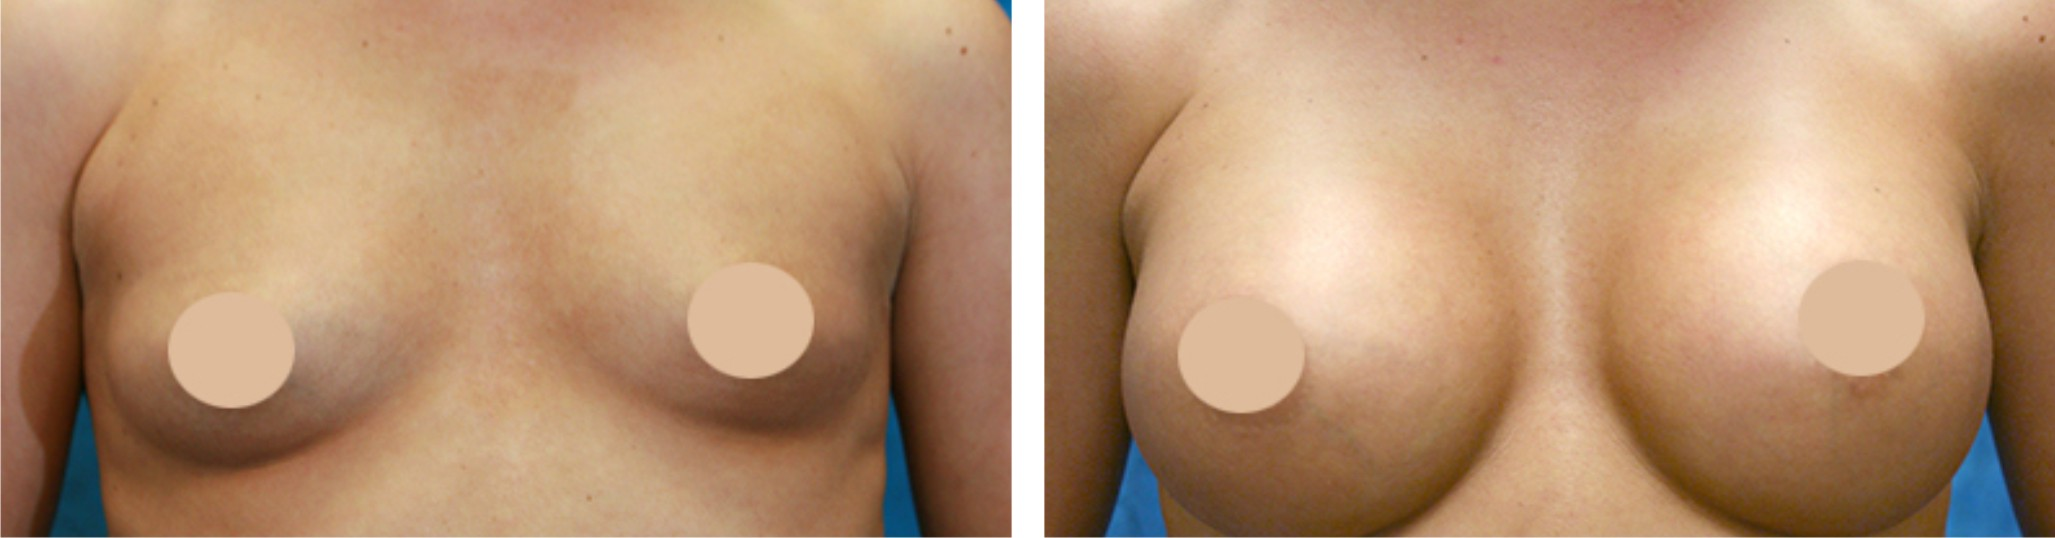 Breast Augmentation Image One